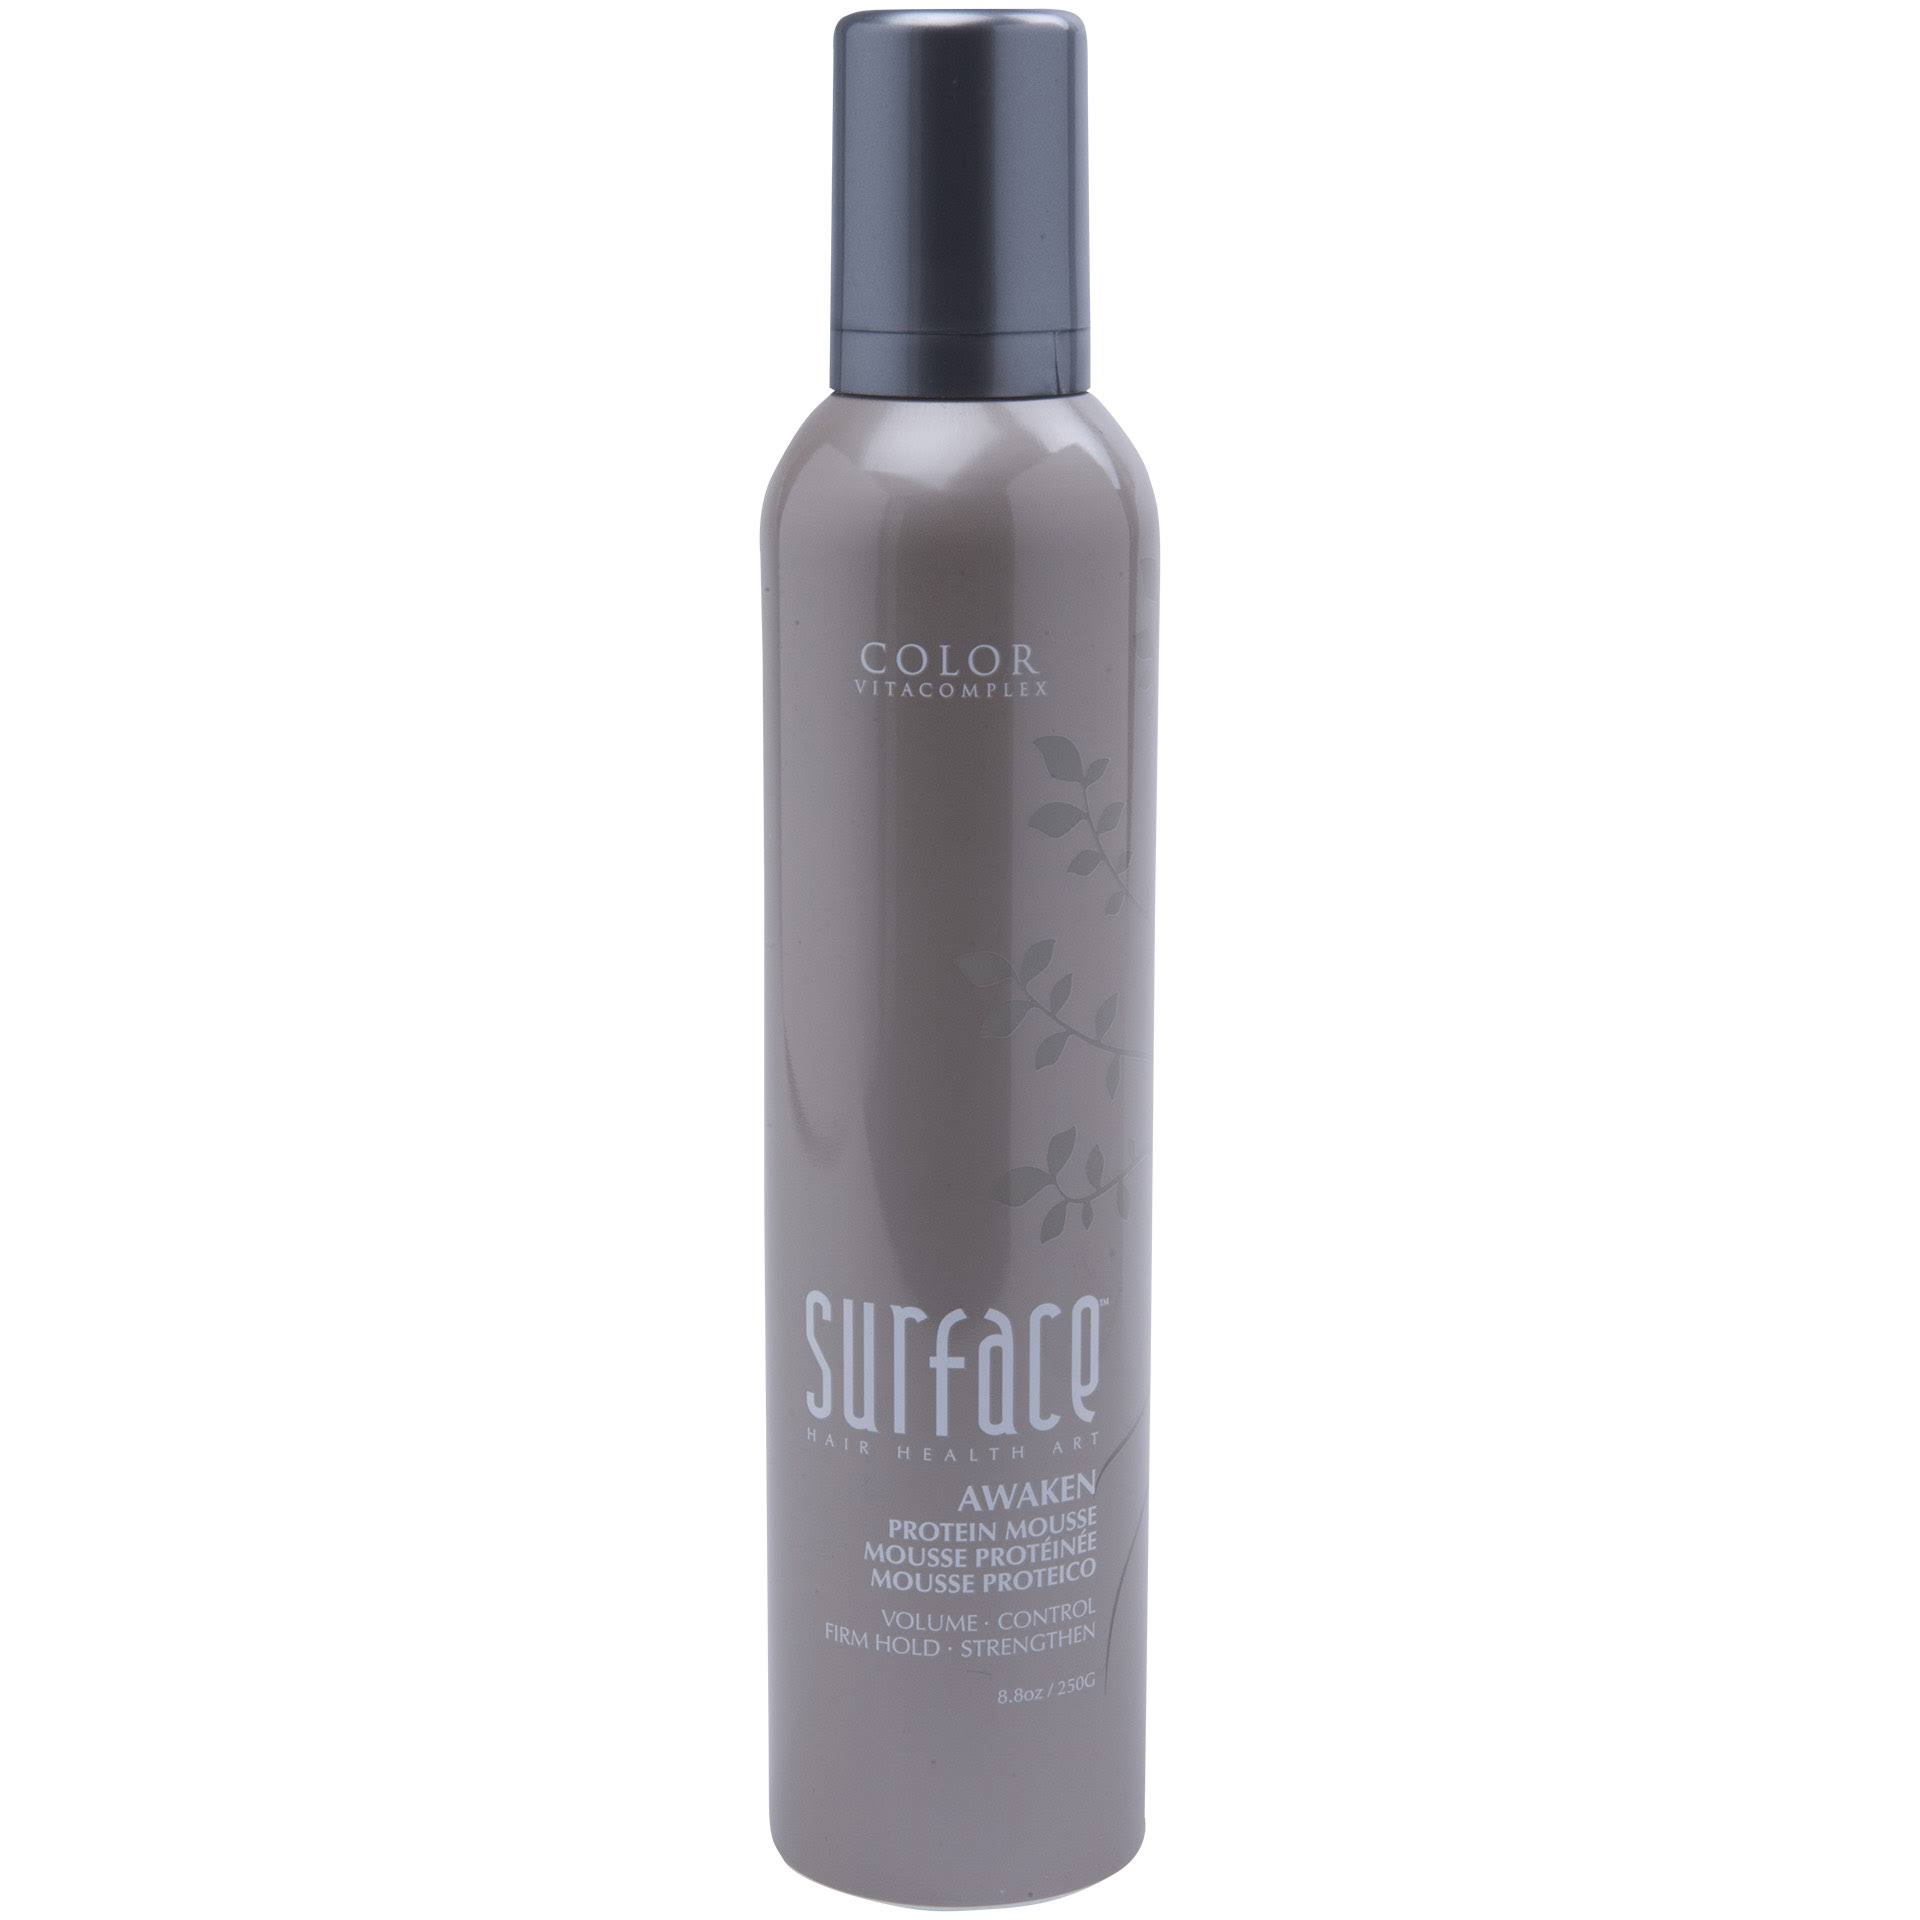 Surface Awaken Protein Mousse - 8.8oz